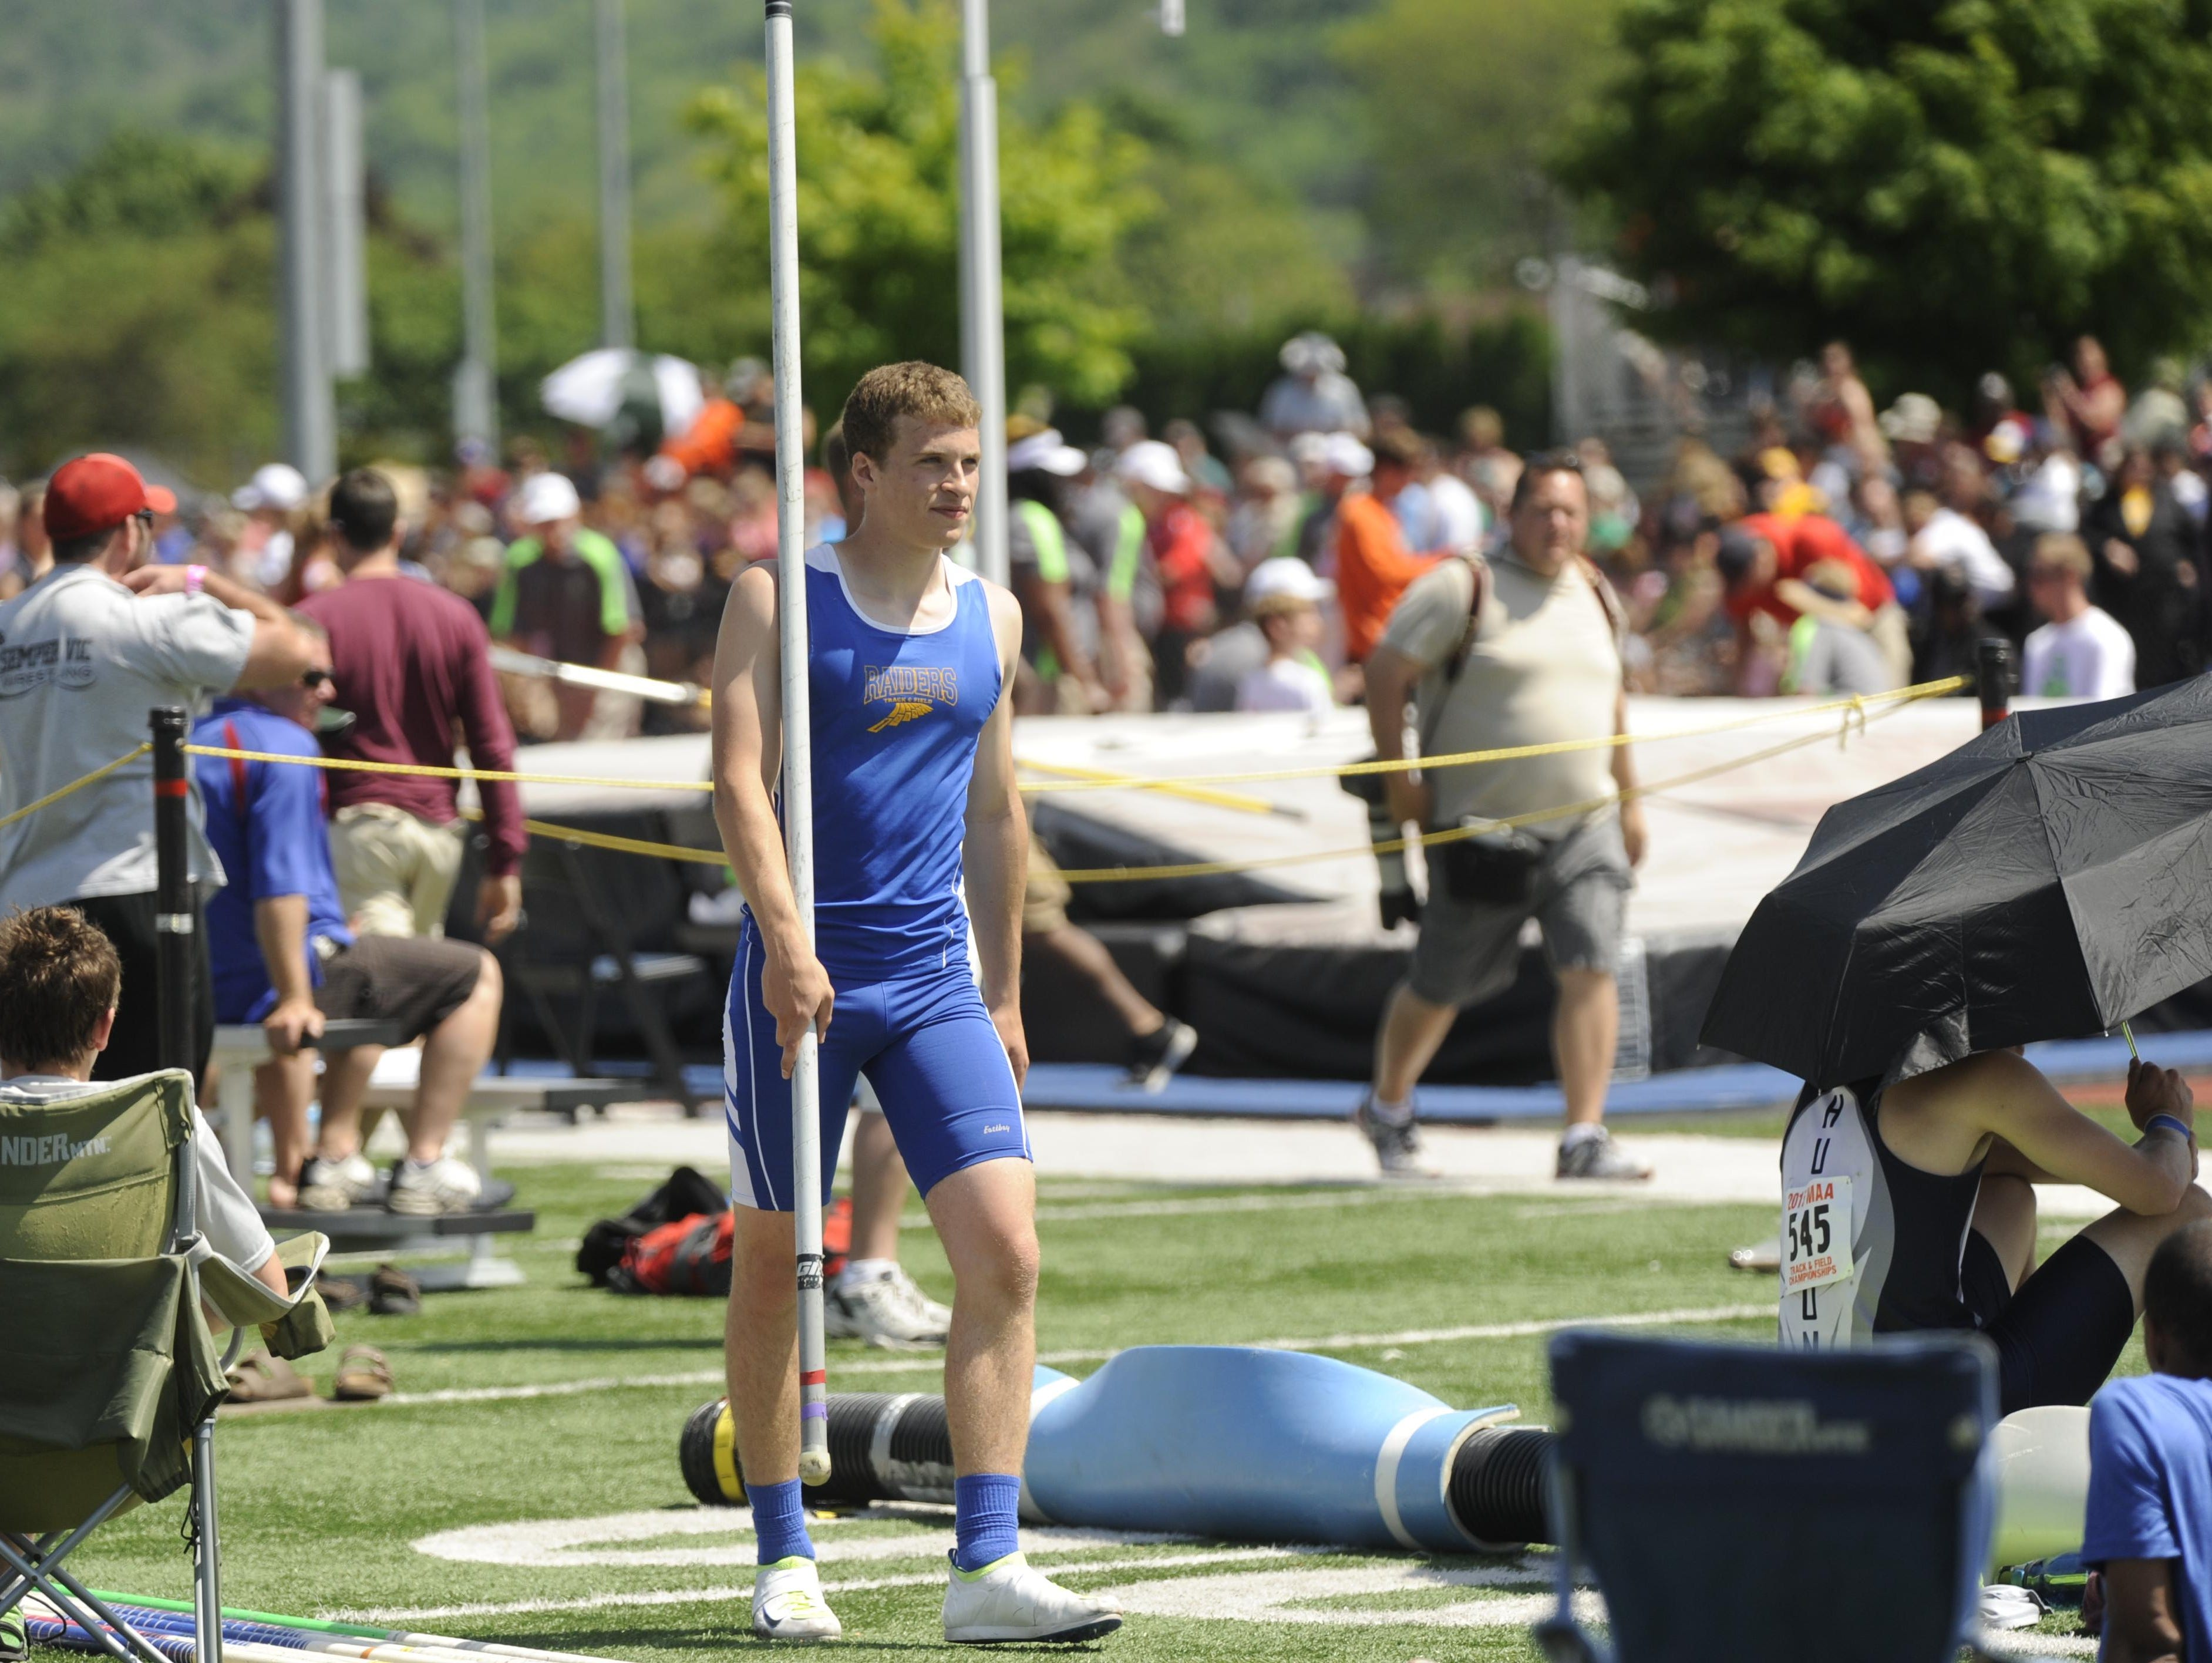 Sheboygan North's Dan Becker waits his turn at the pole vault during Saturday's WIAA State Track and Field Meet. Becker won the title in the event.